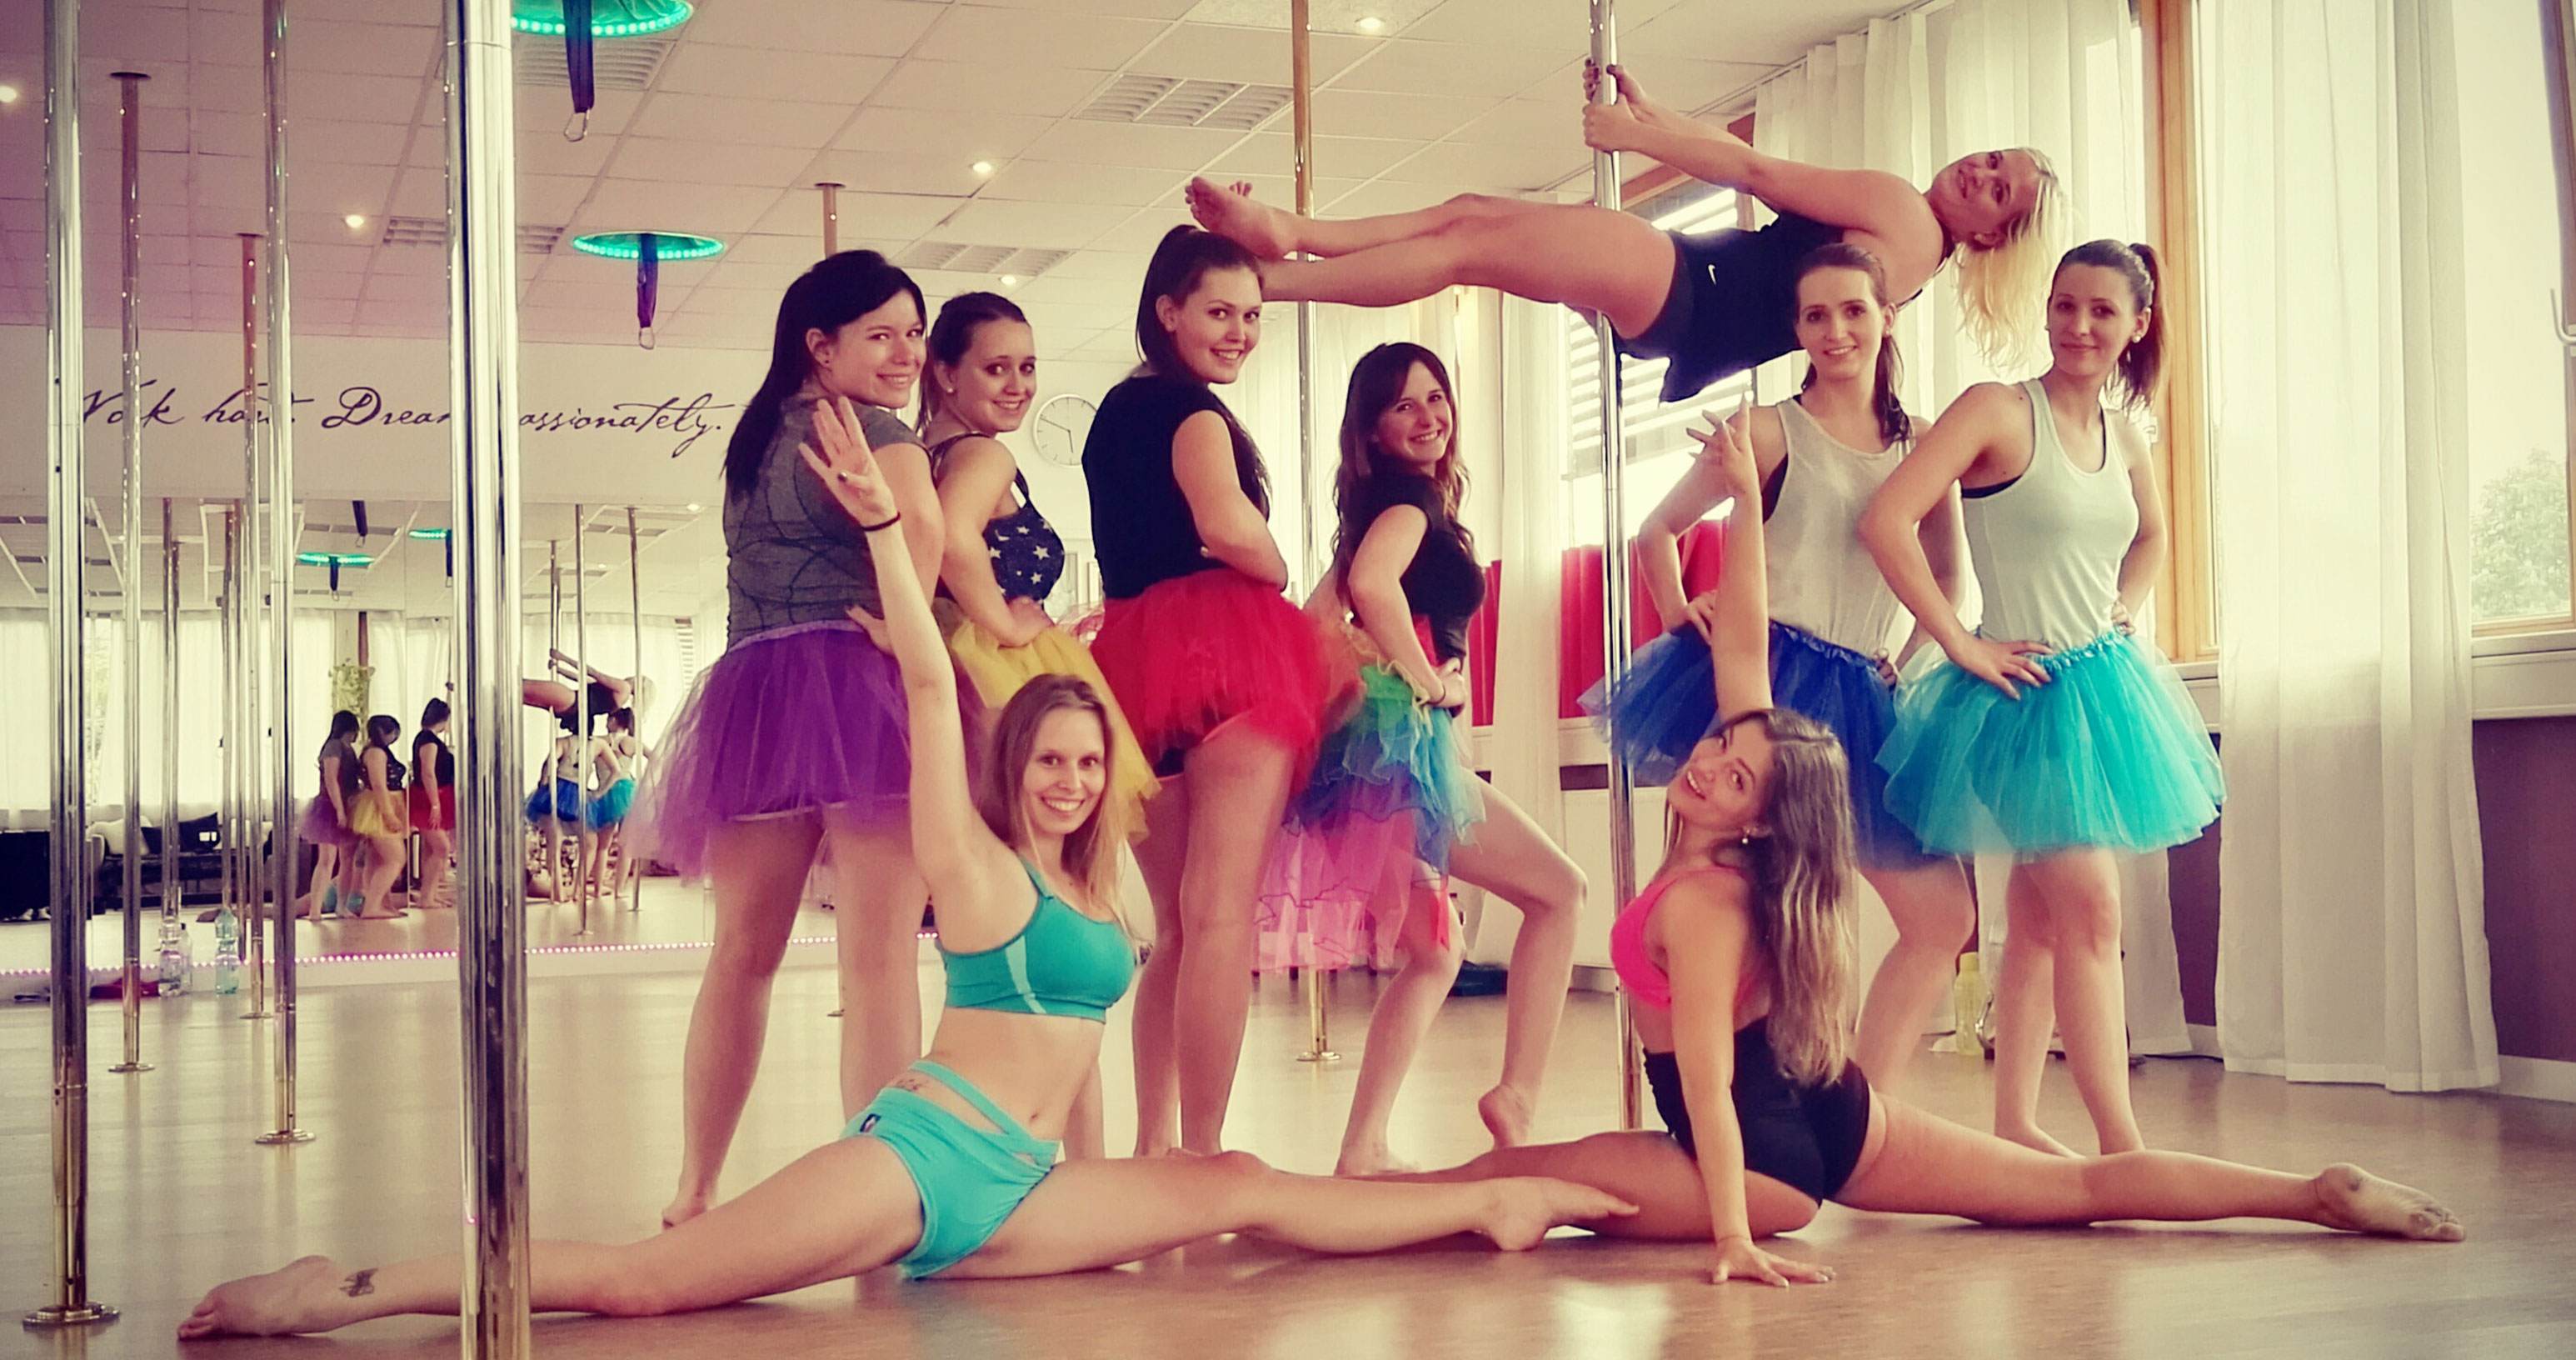 jga-party-pole-dance-rosenheim